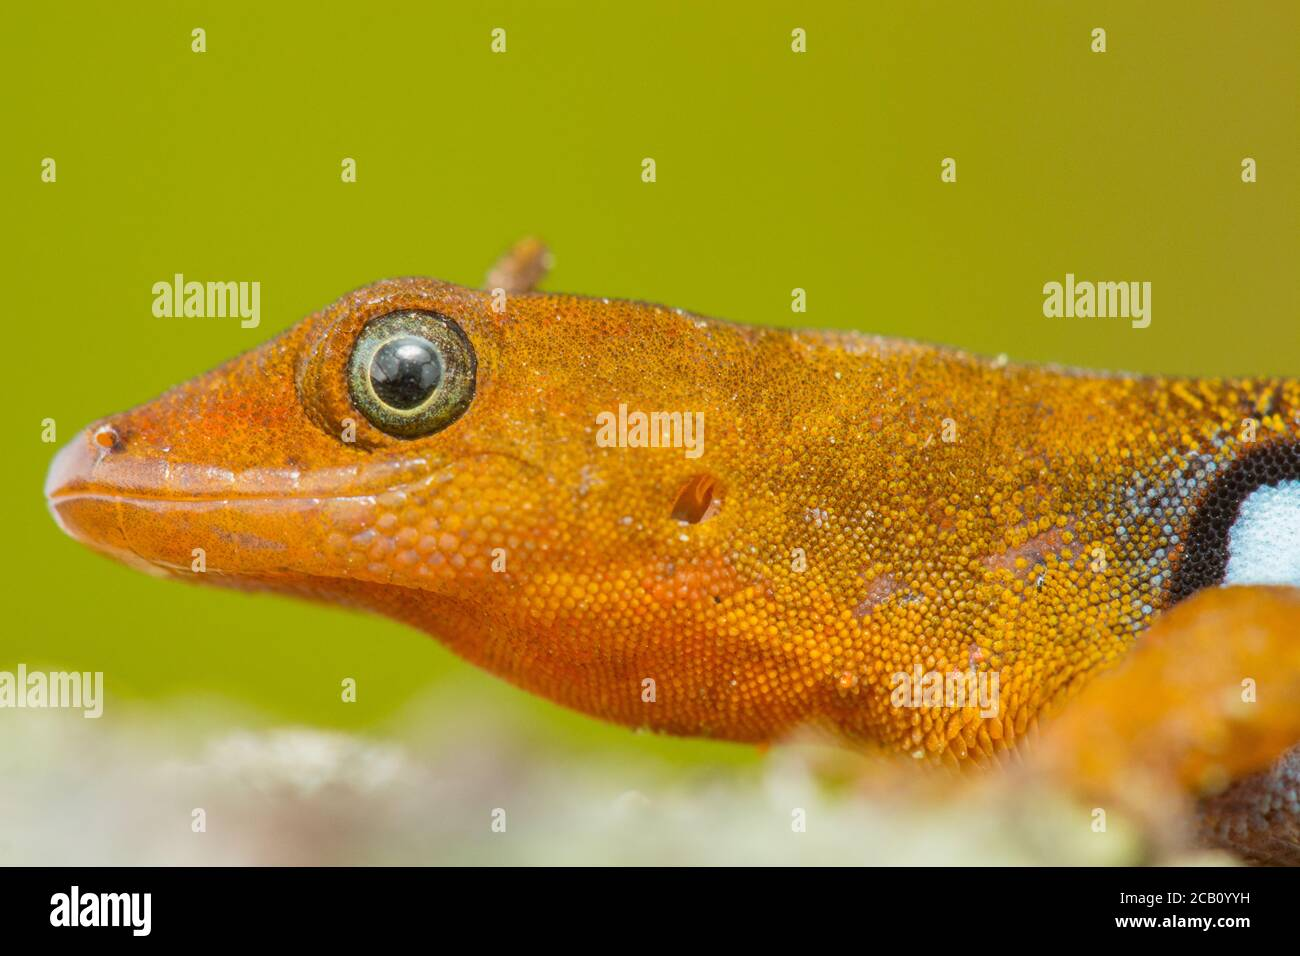 Gonatodes is a genus of New World dwarf geckos of the family Sphaerodactylidae, Colombia Stock Photo